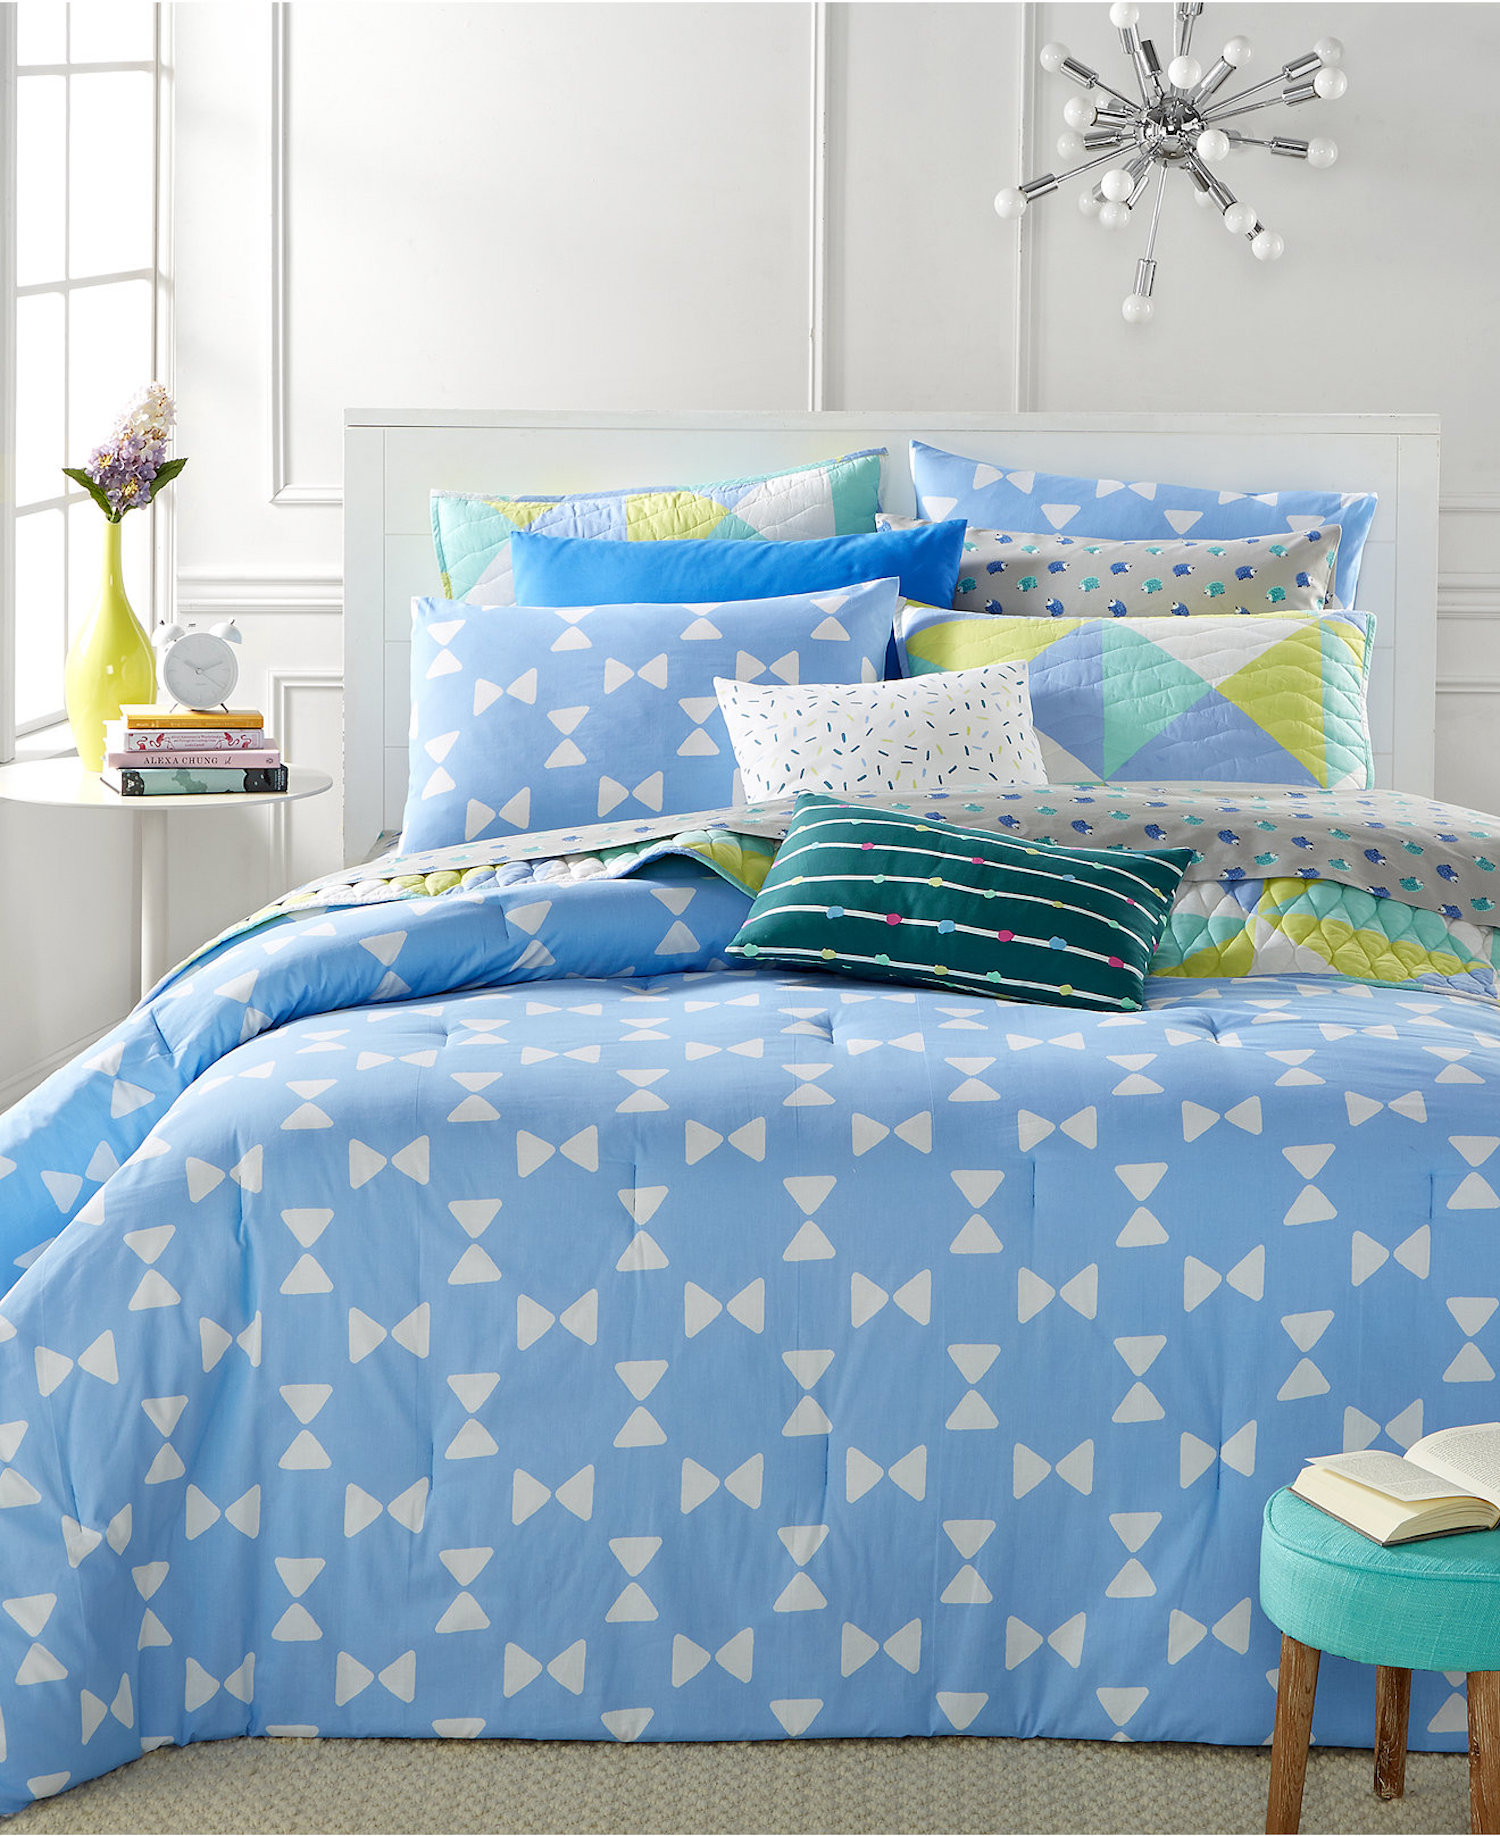 Whim By Martha Stewart Bow Tie Queen Duvet Set SOC 1084